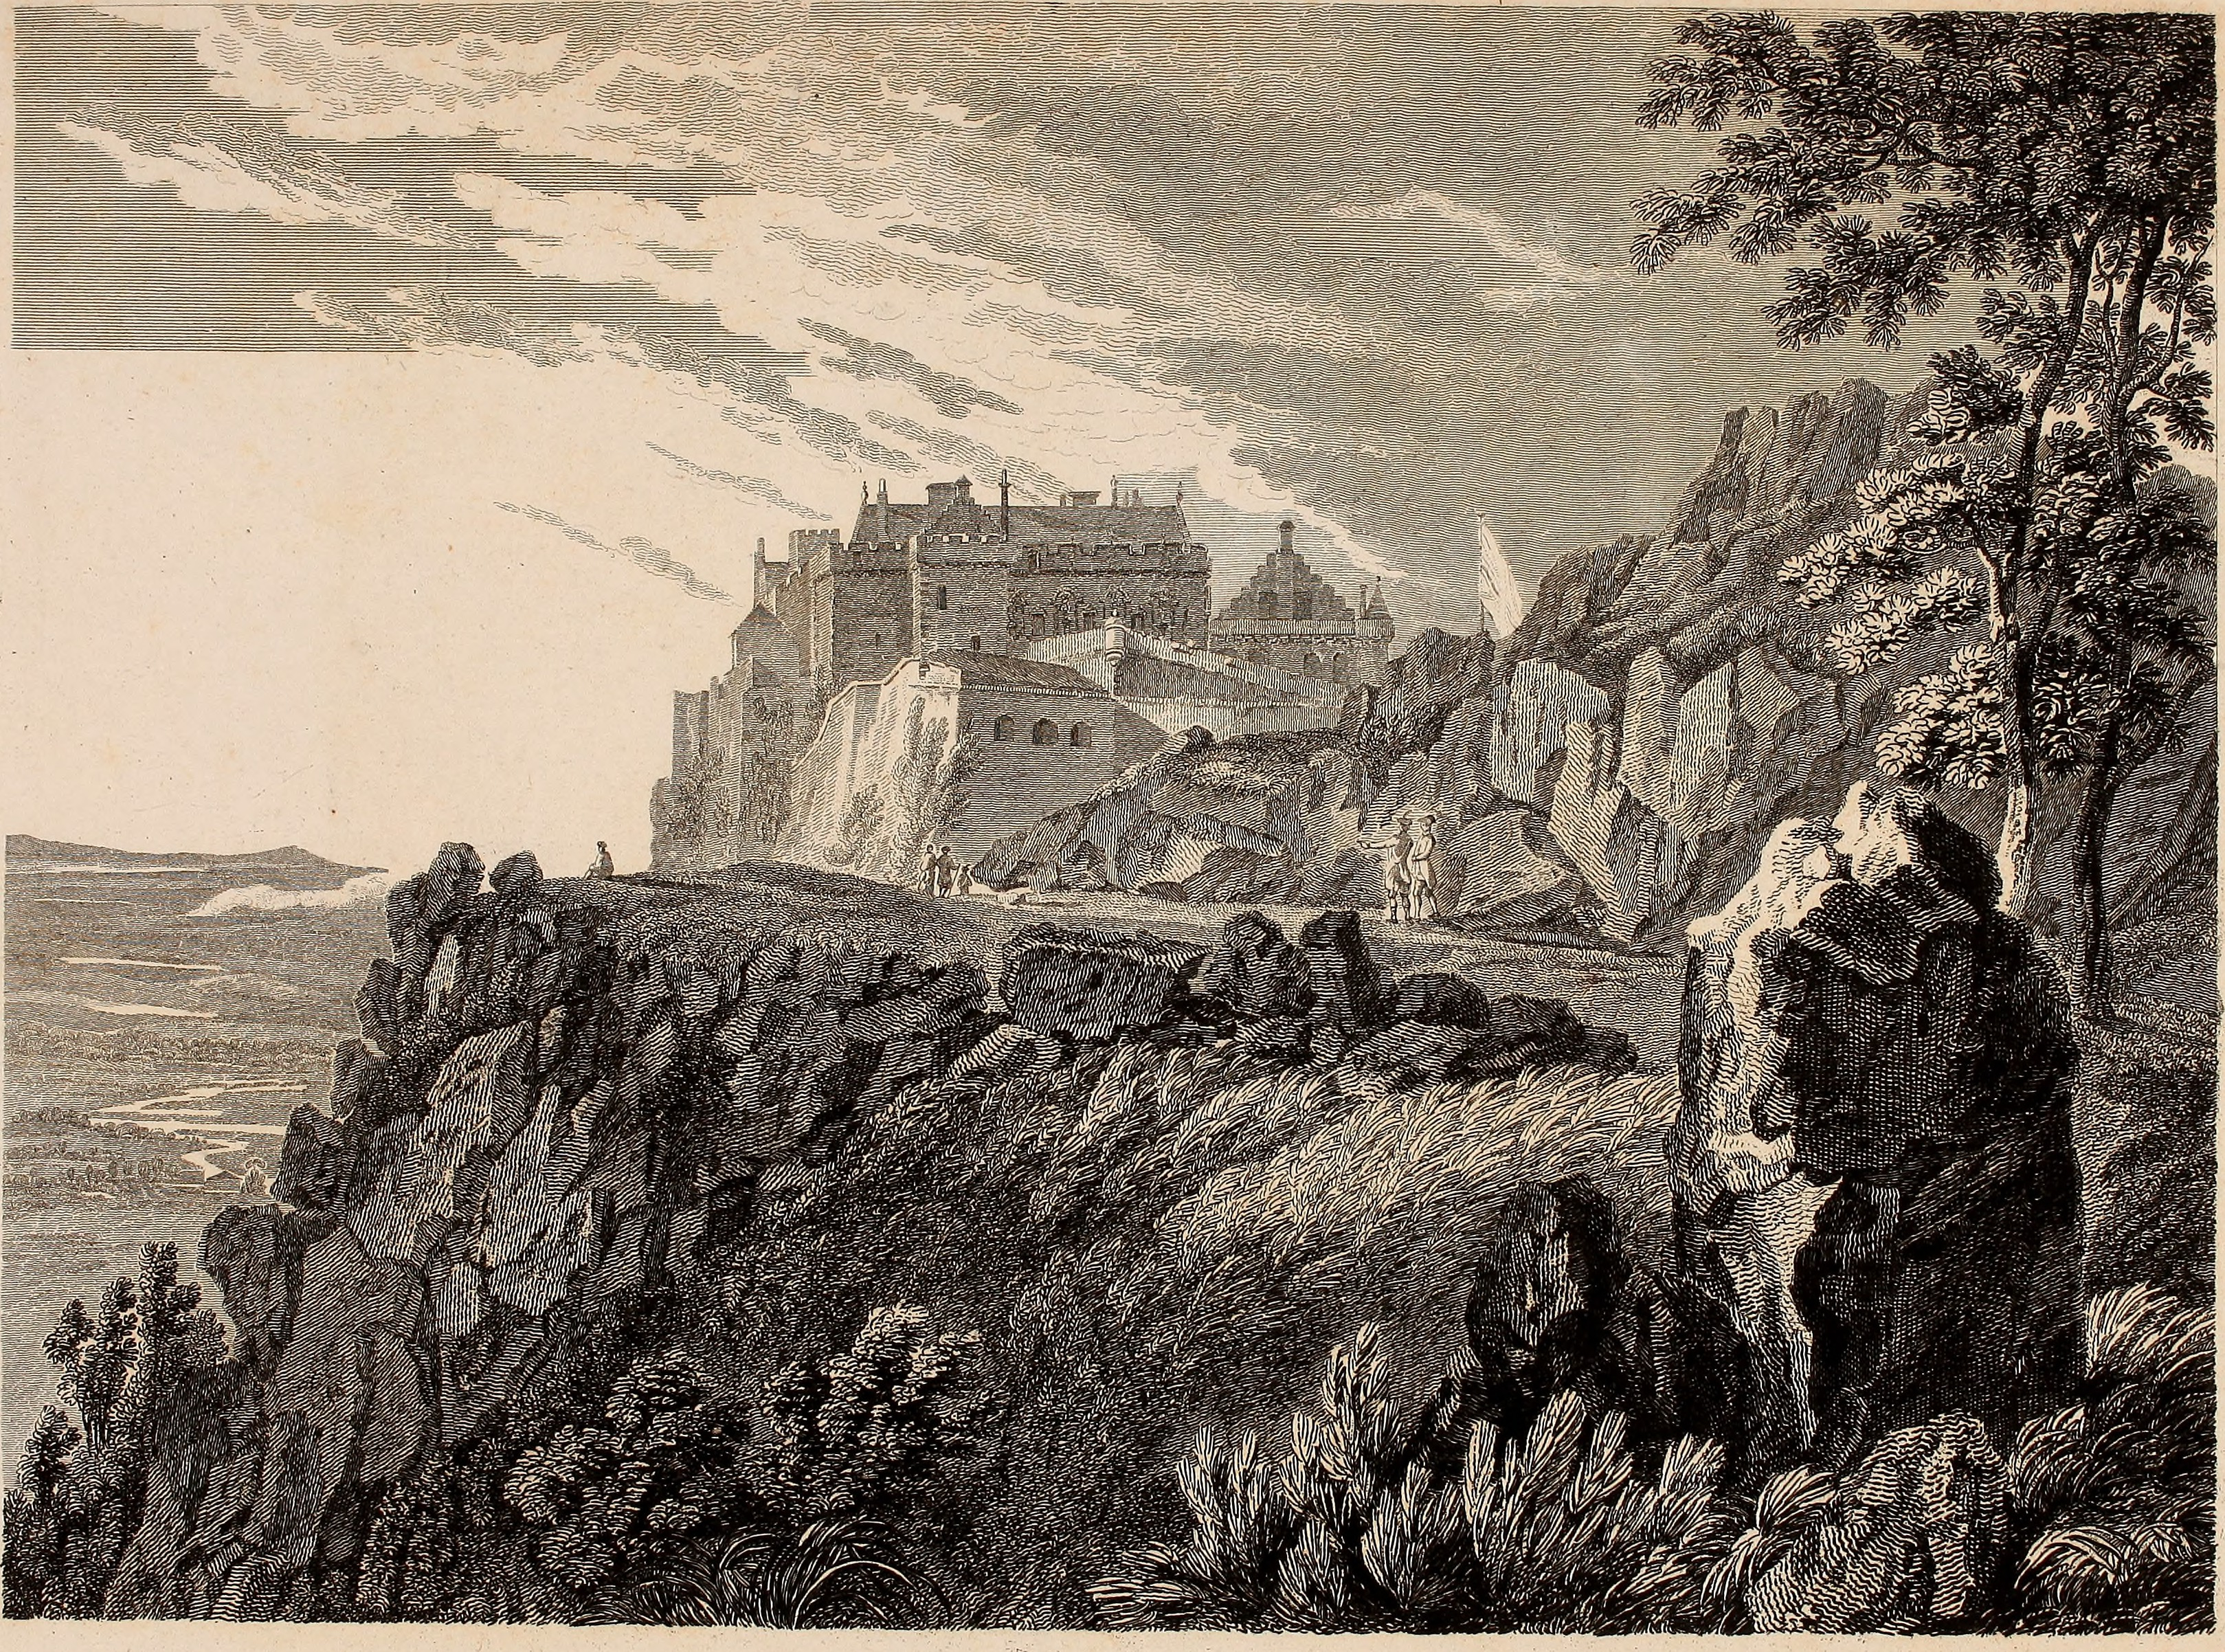 File:Antiquities of Great Britain, - illustrated in views of monasteries,  castles,